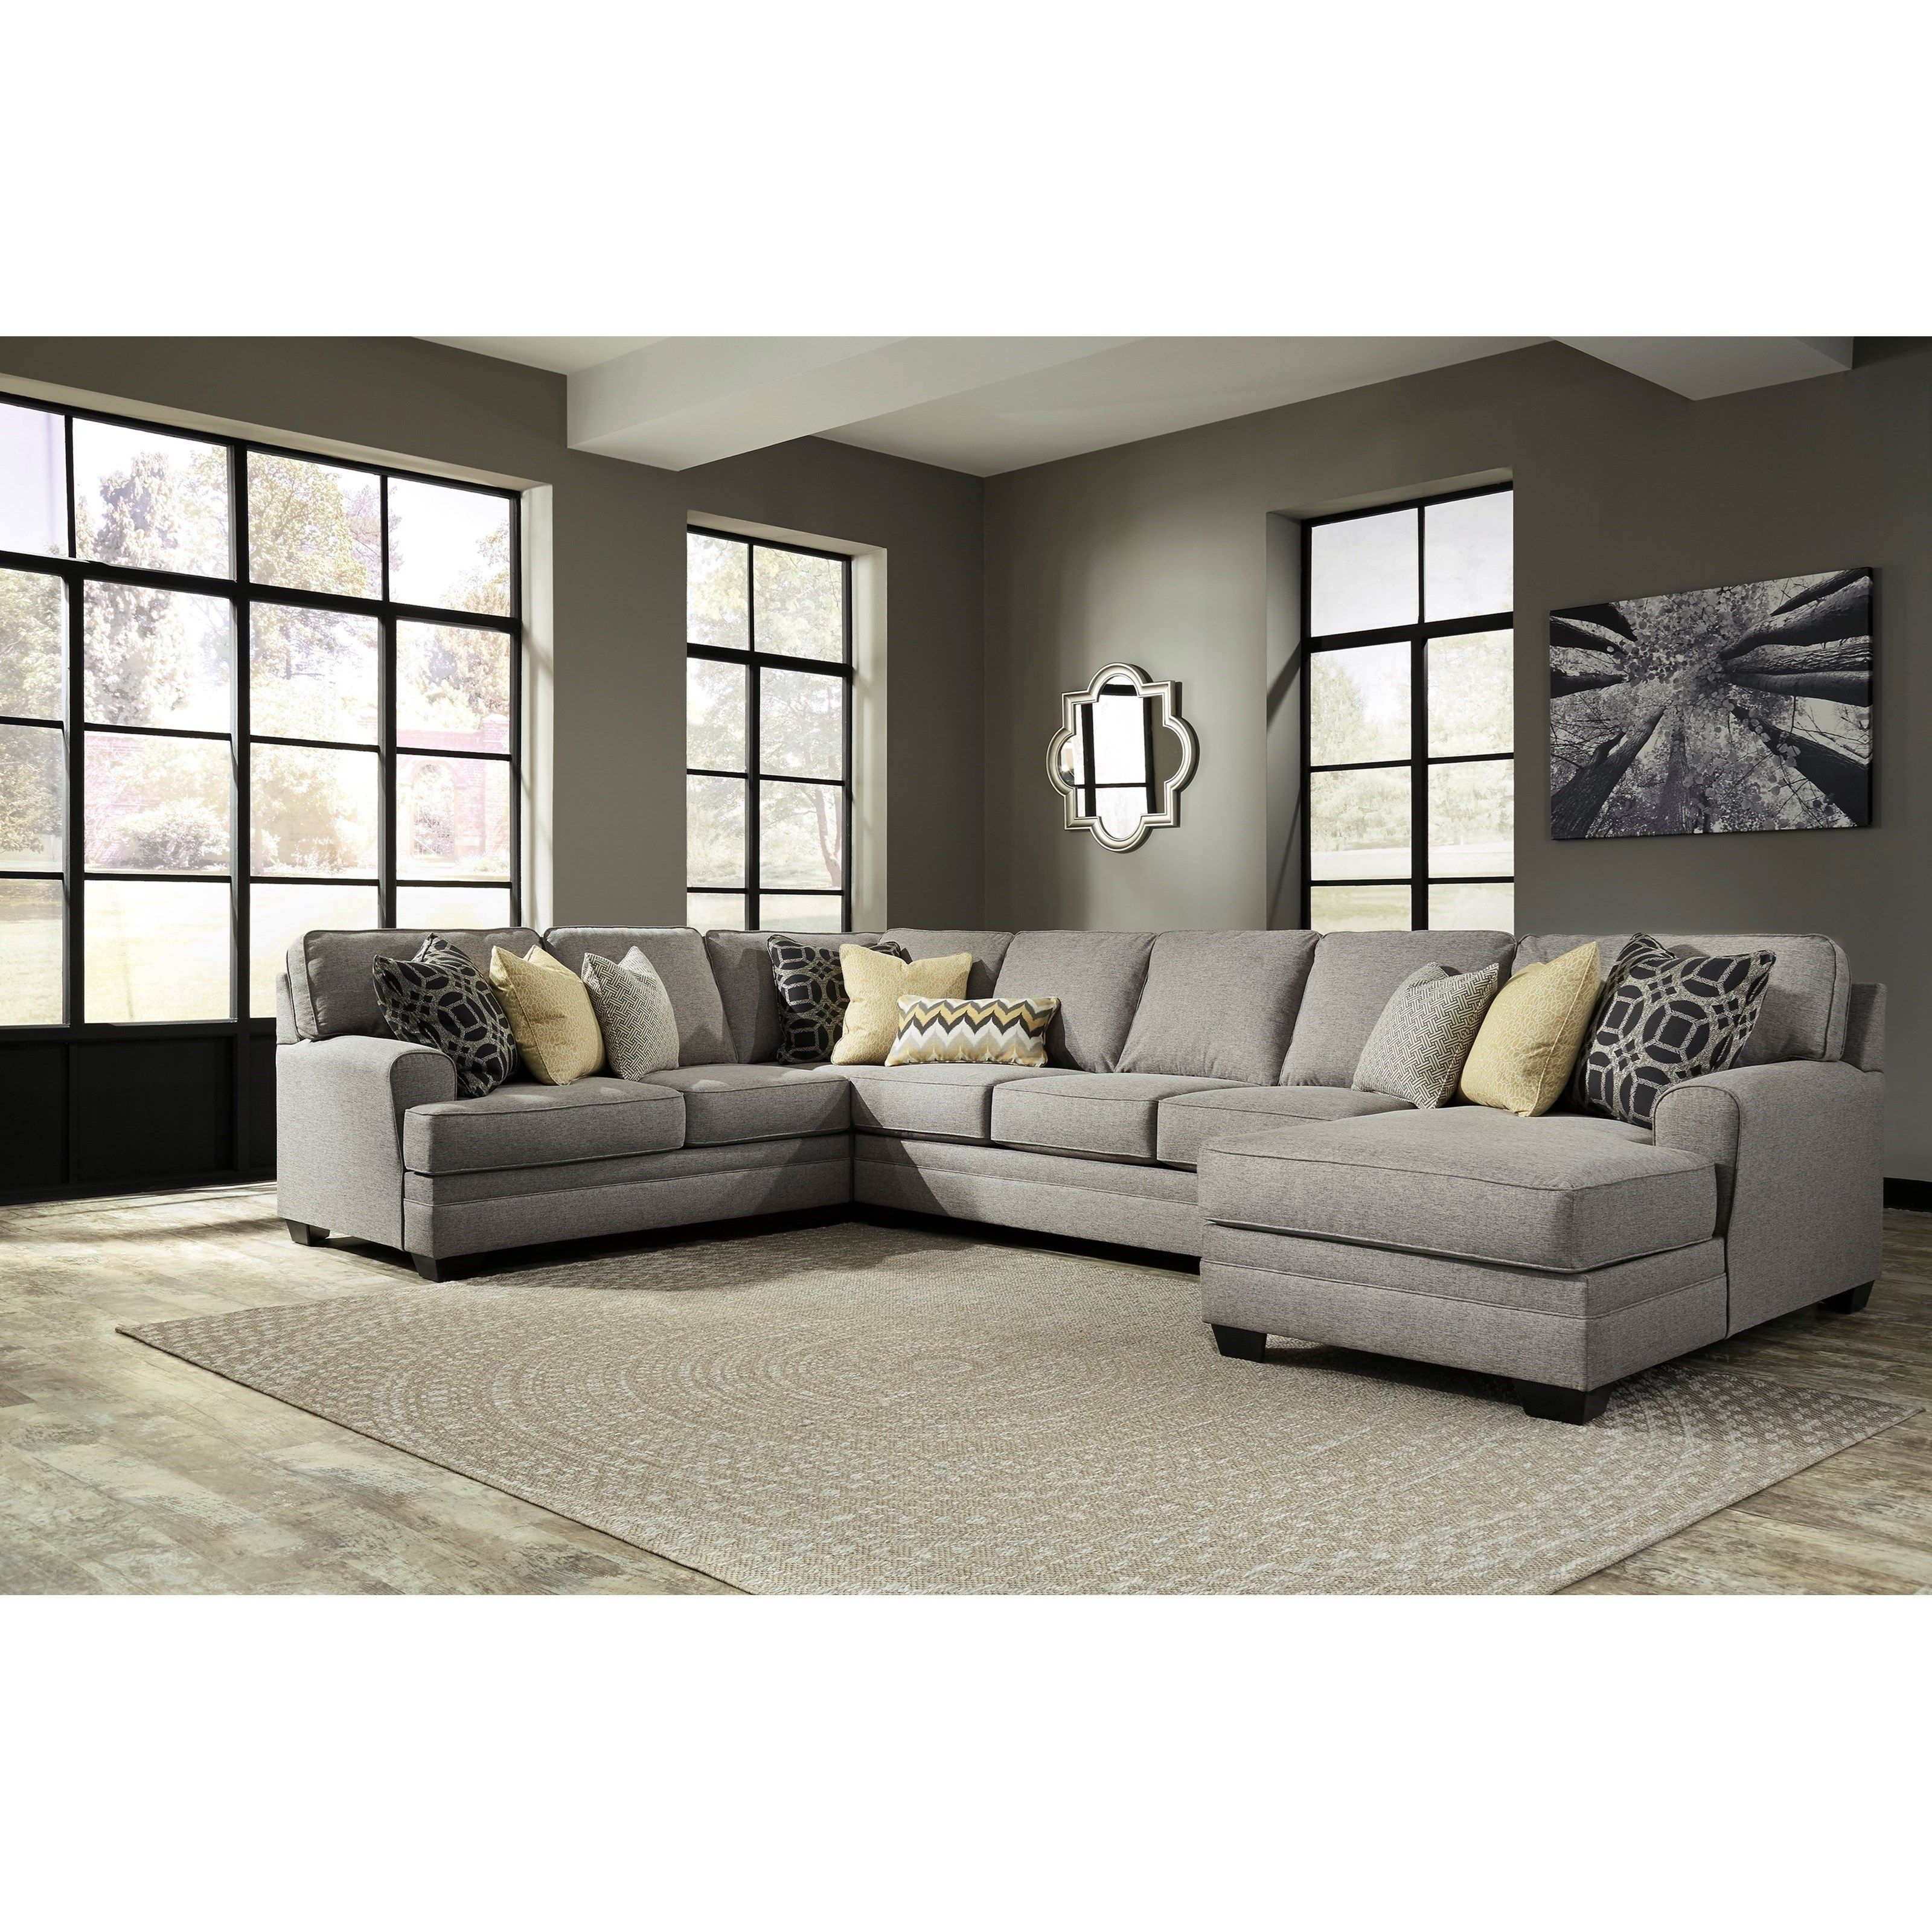 Contemporary 4 Piece Sectional With Chaise & Armless Sofa | Sofas Regarding Eau Claire Wi Sectional Sofas (View 7 of 10)